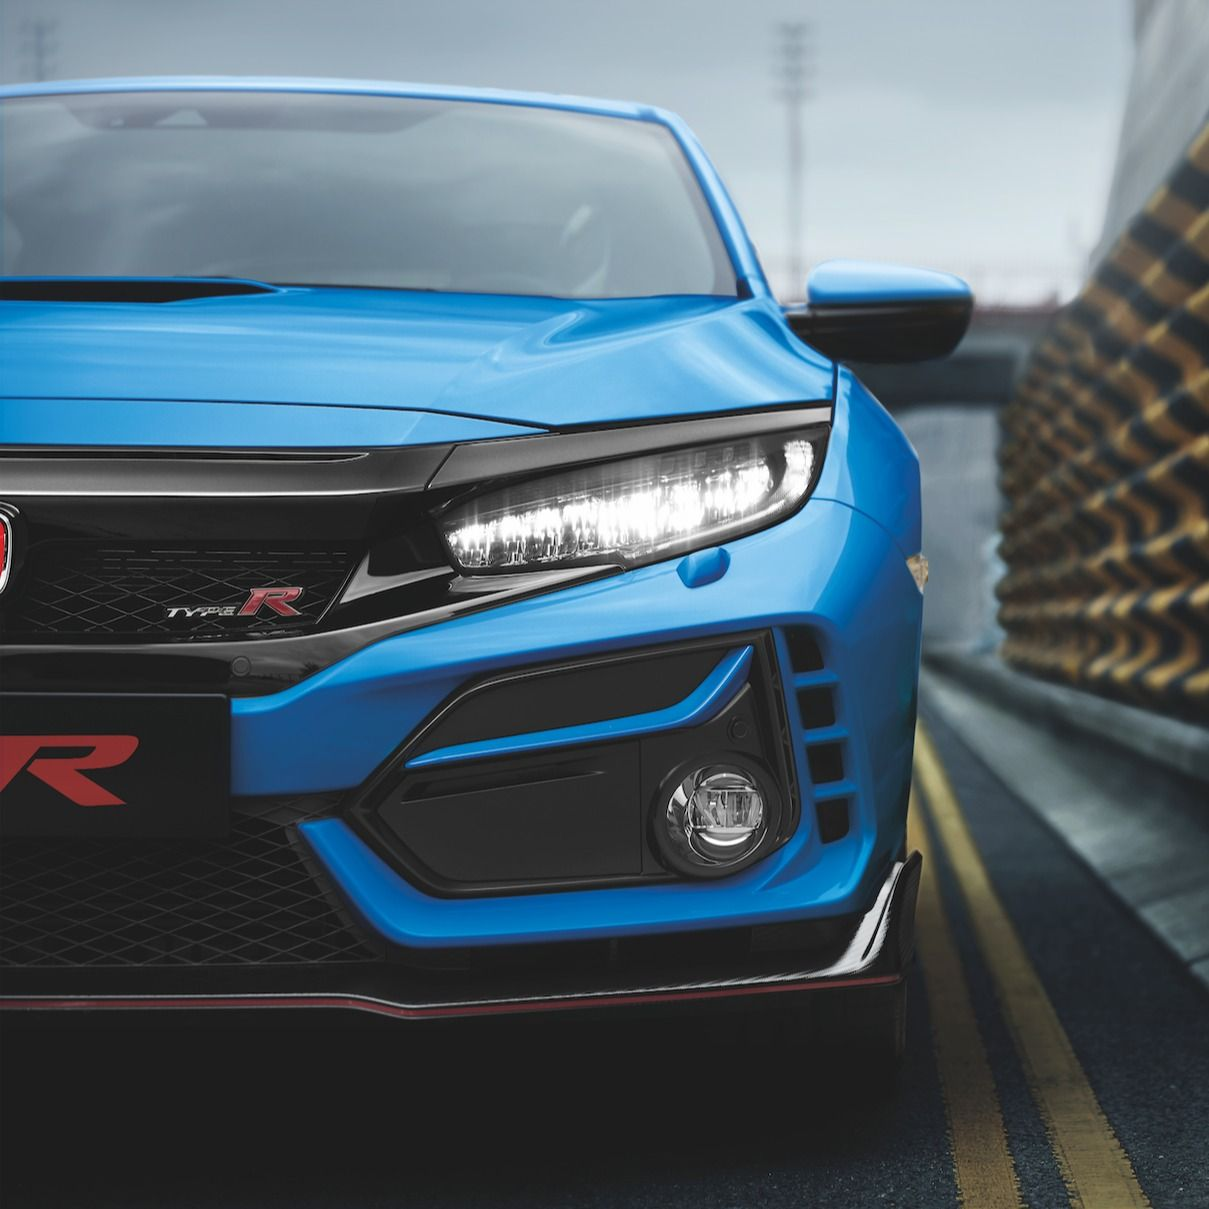 Honda Civic Type R In 2020 Honda Civic Type R Honda Civic Honda